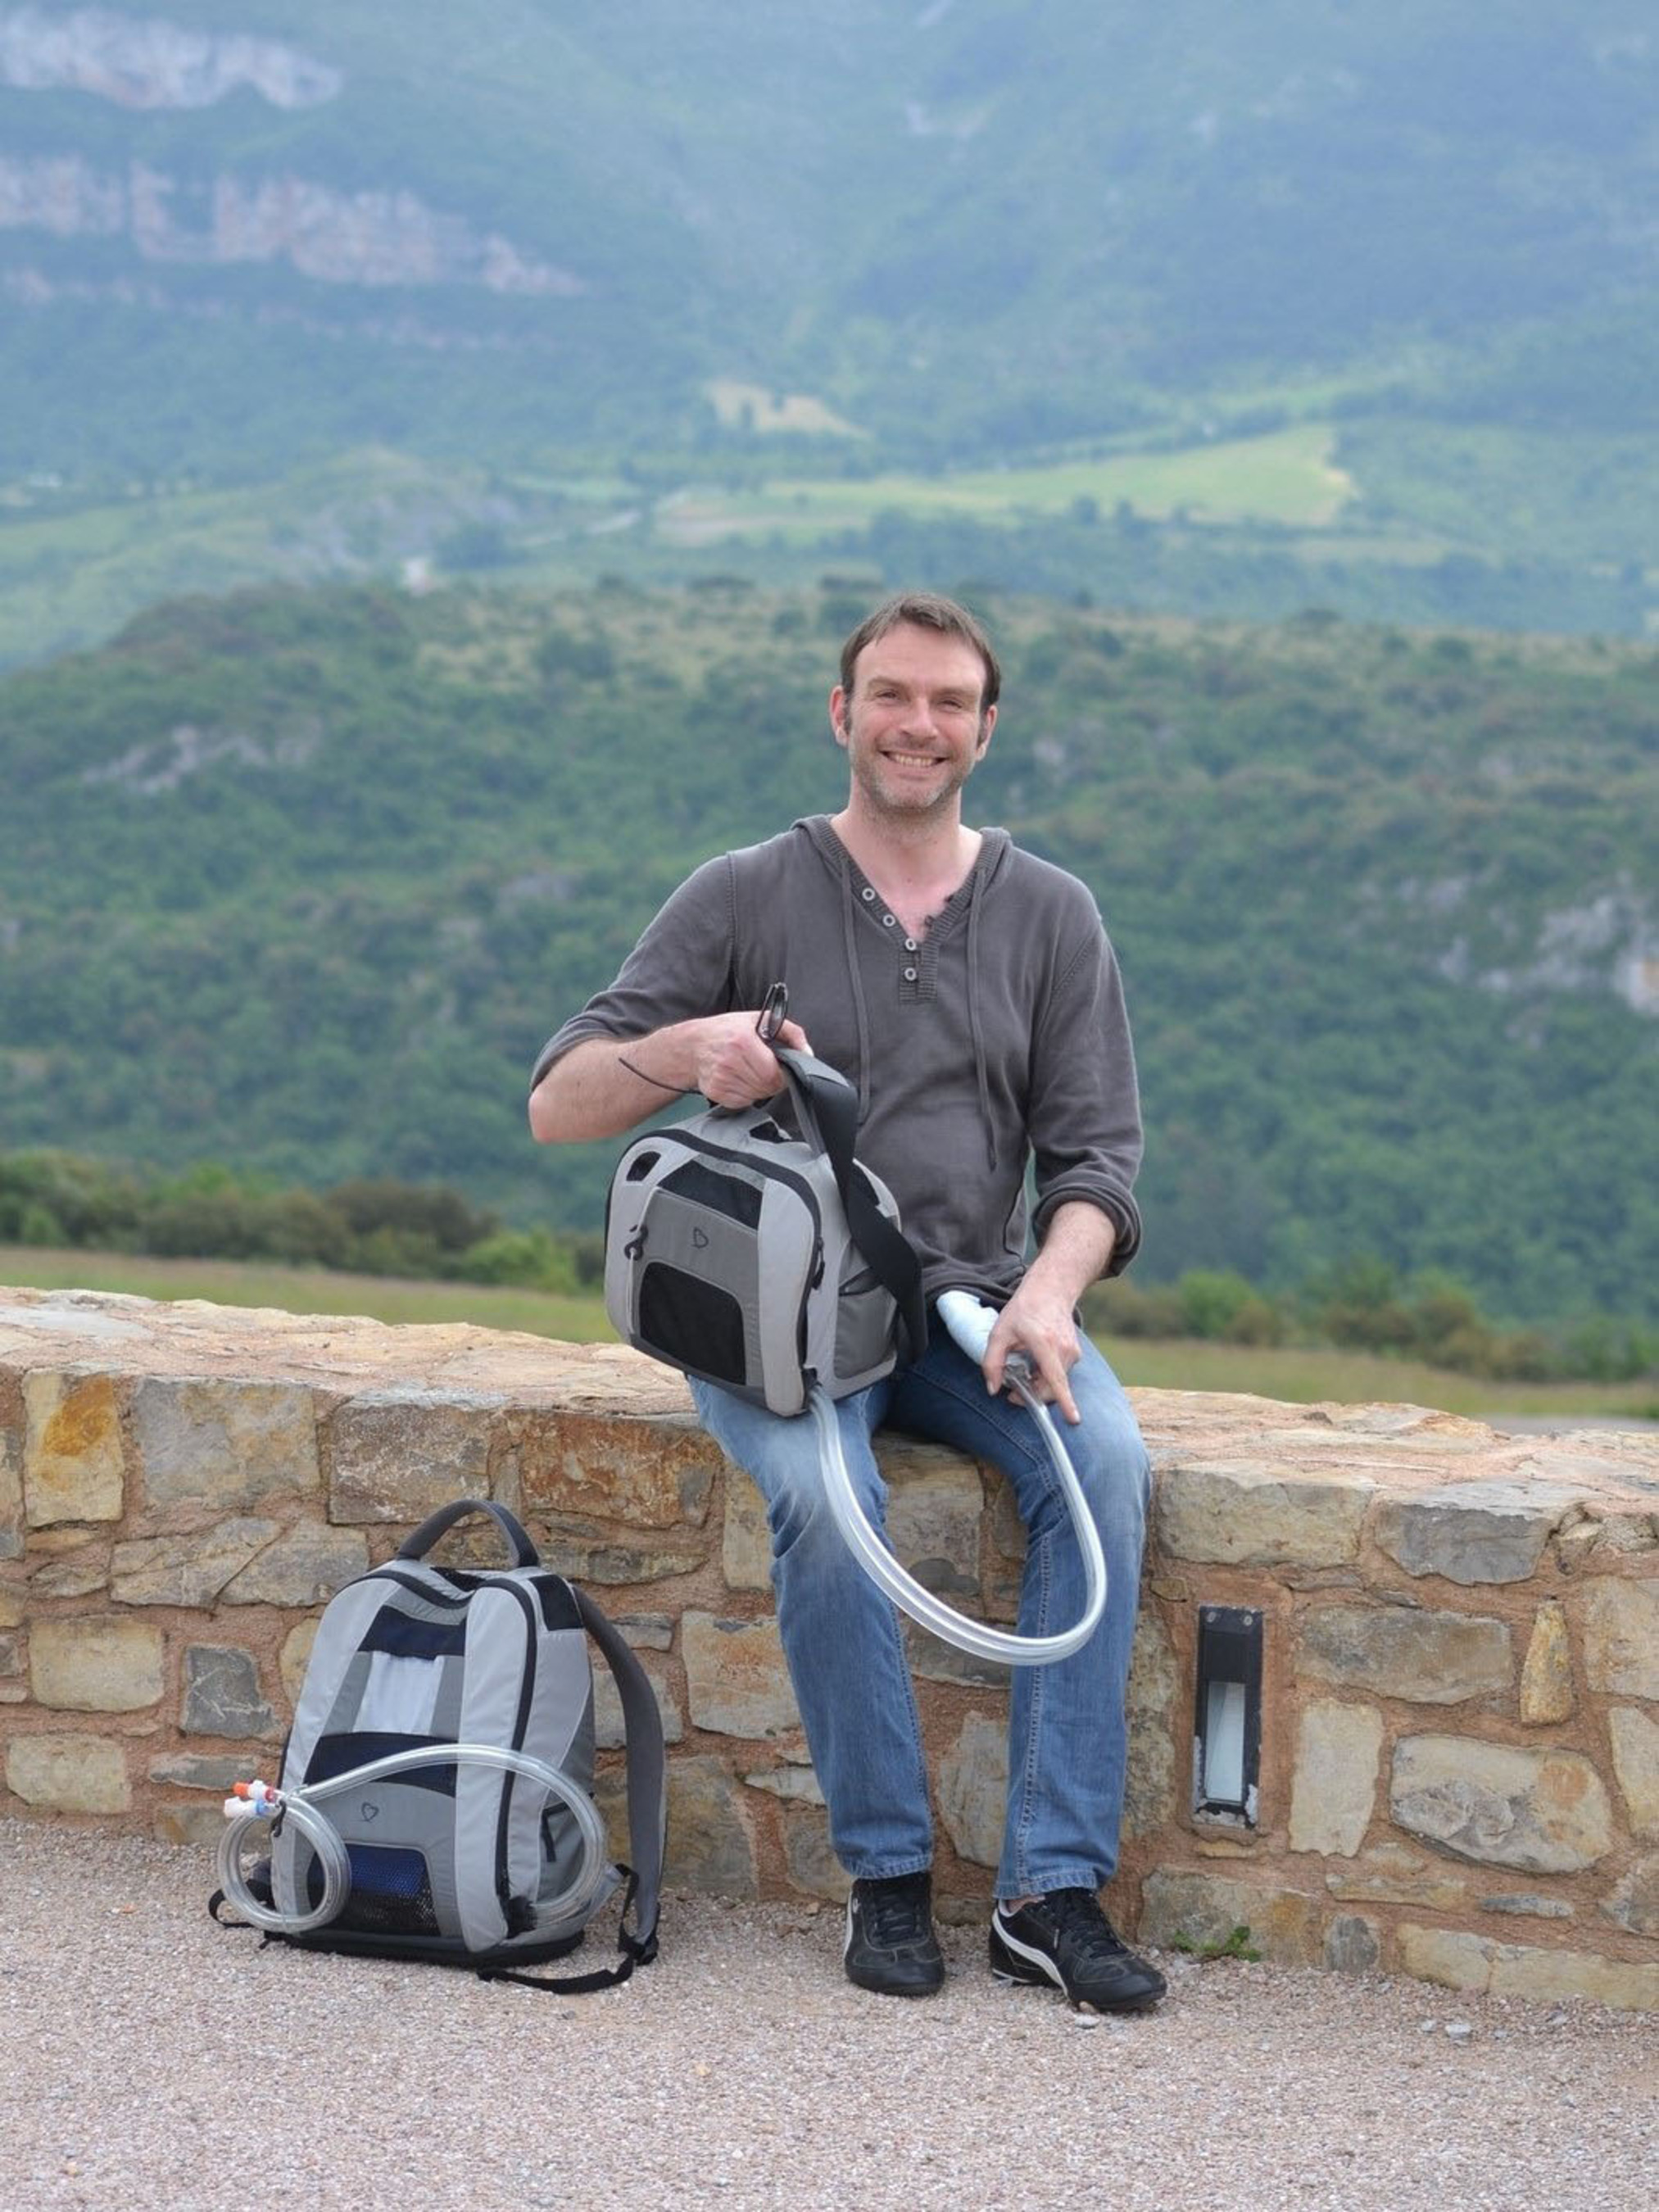 On Aug. 5, 2013, Frederic Thiollet surpassed two years of support with the SynCardia Total Artificial Heart. In the Shoulder Bag he's holding is the Freedom(R) portable driver, which powers his Total Artificial Heart. The Backpack on the ground contains his back-up Freedom driver and extra batteries.  (PRNewsFoto/SynCardia Systems, Inc.)